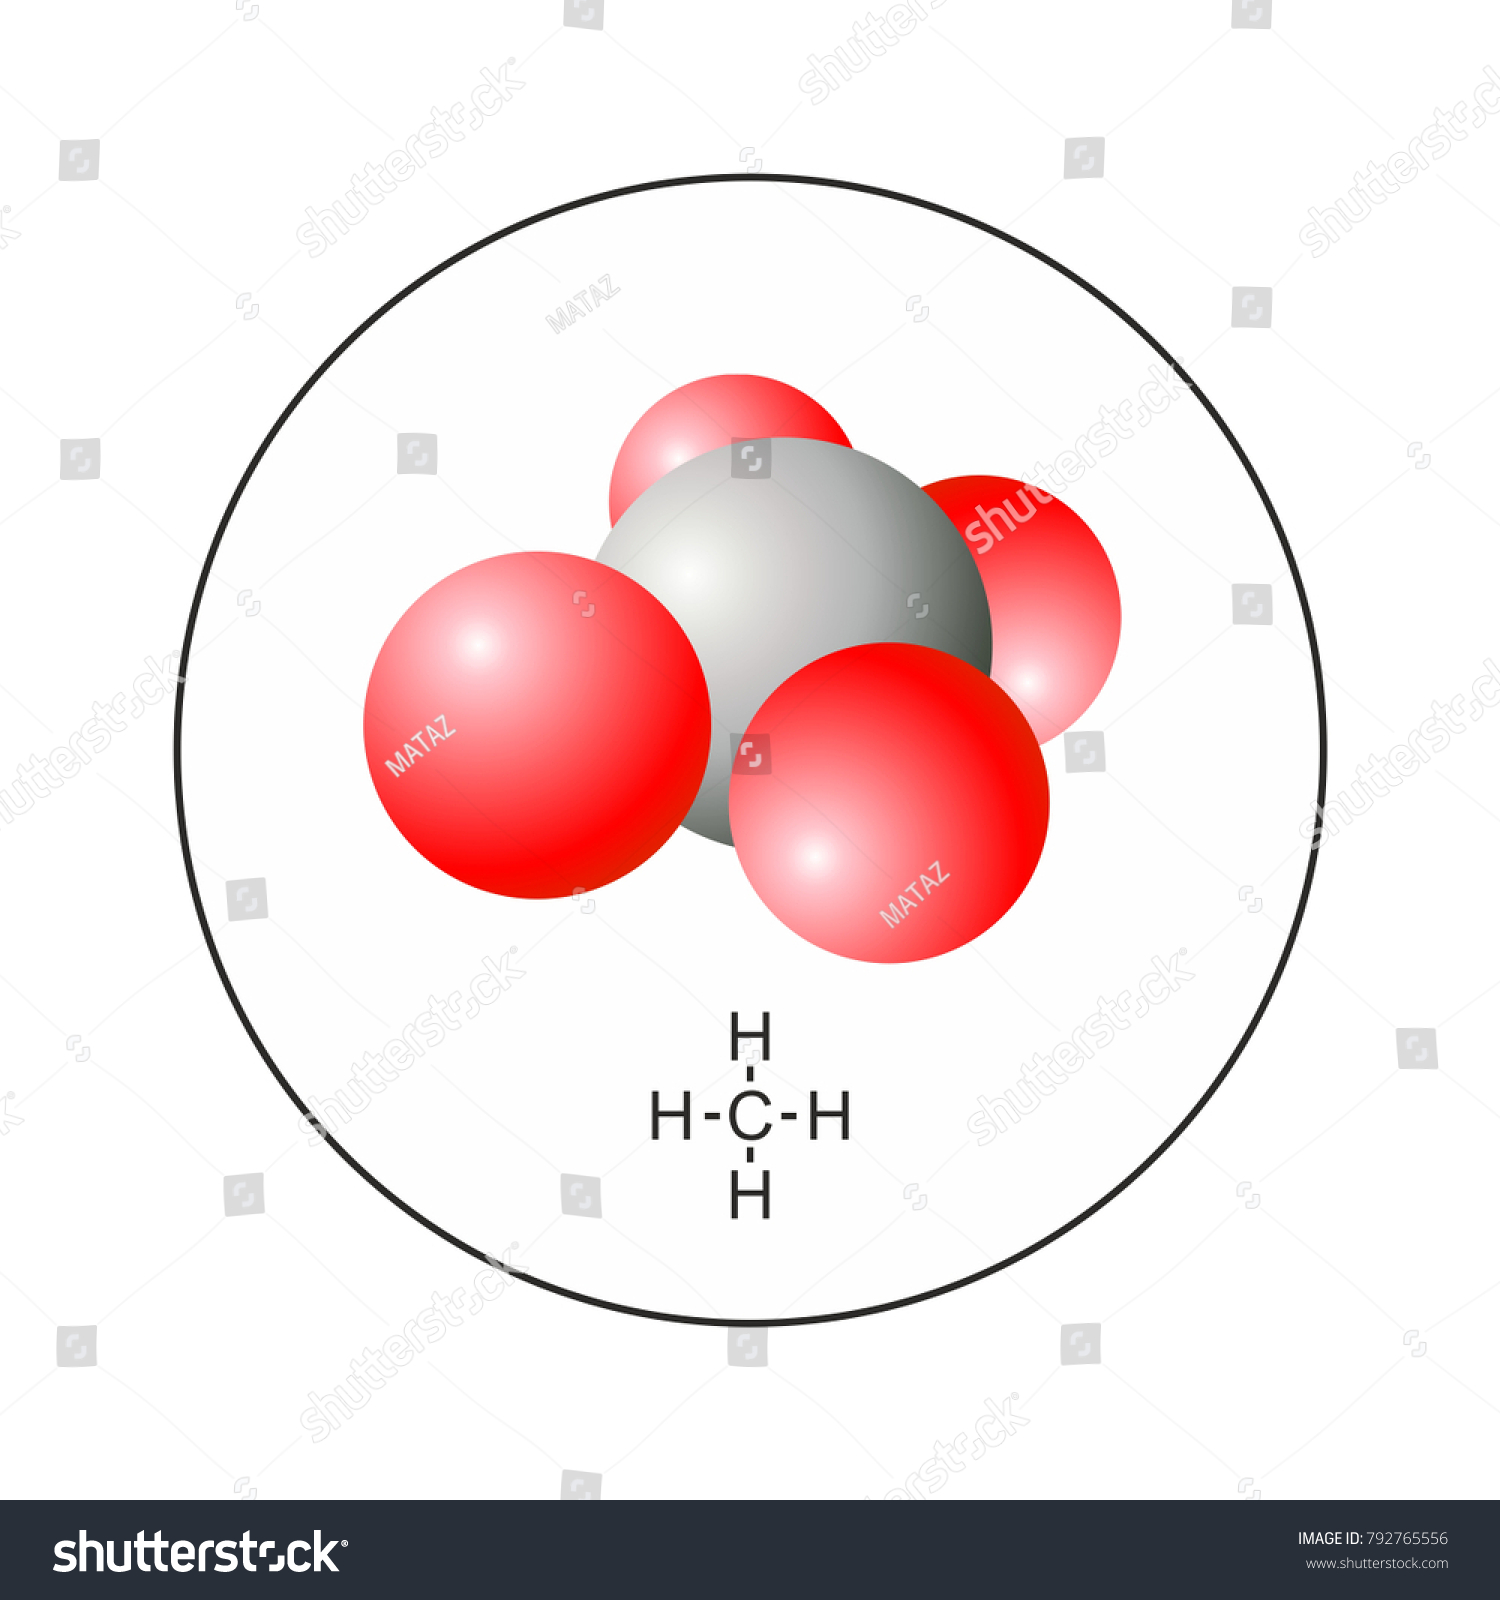 Ch4 methane molecule 3d model chemicel stock vector 792765556 ch4 methane molecule 3d model chemicel icon sign symbol for web and print biocorpaavc Gallery